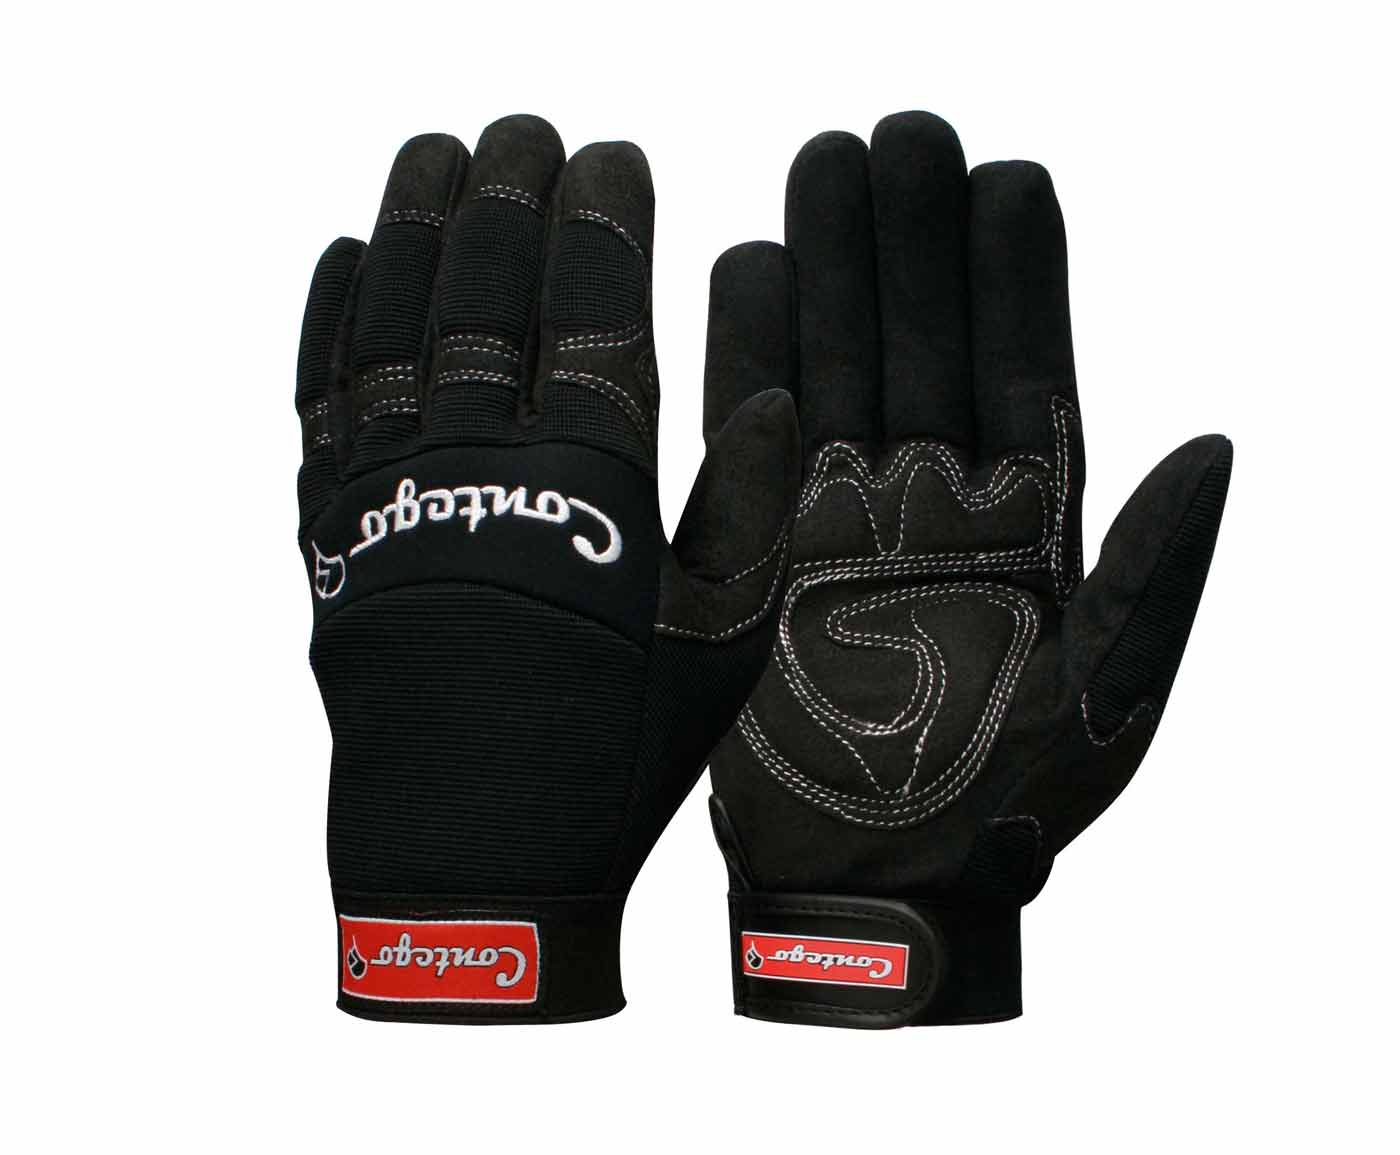 contego gloves synthetic leather rigger safety glove p8174